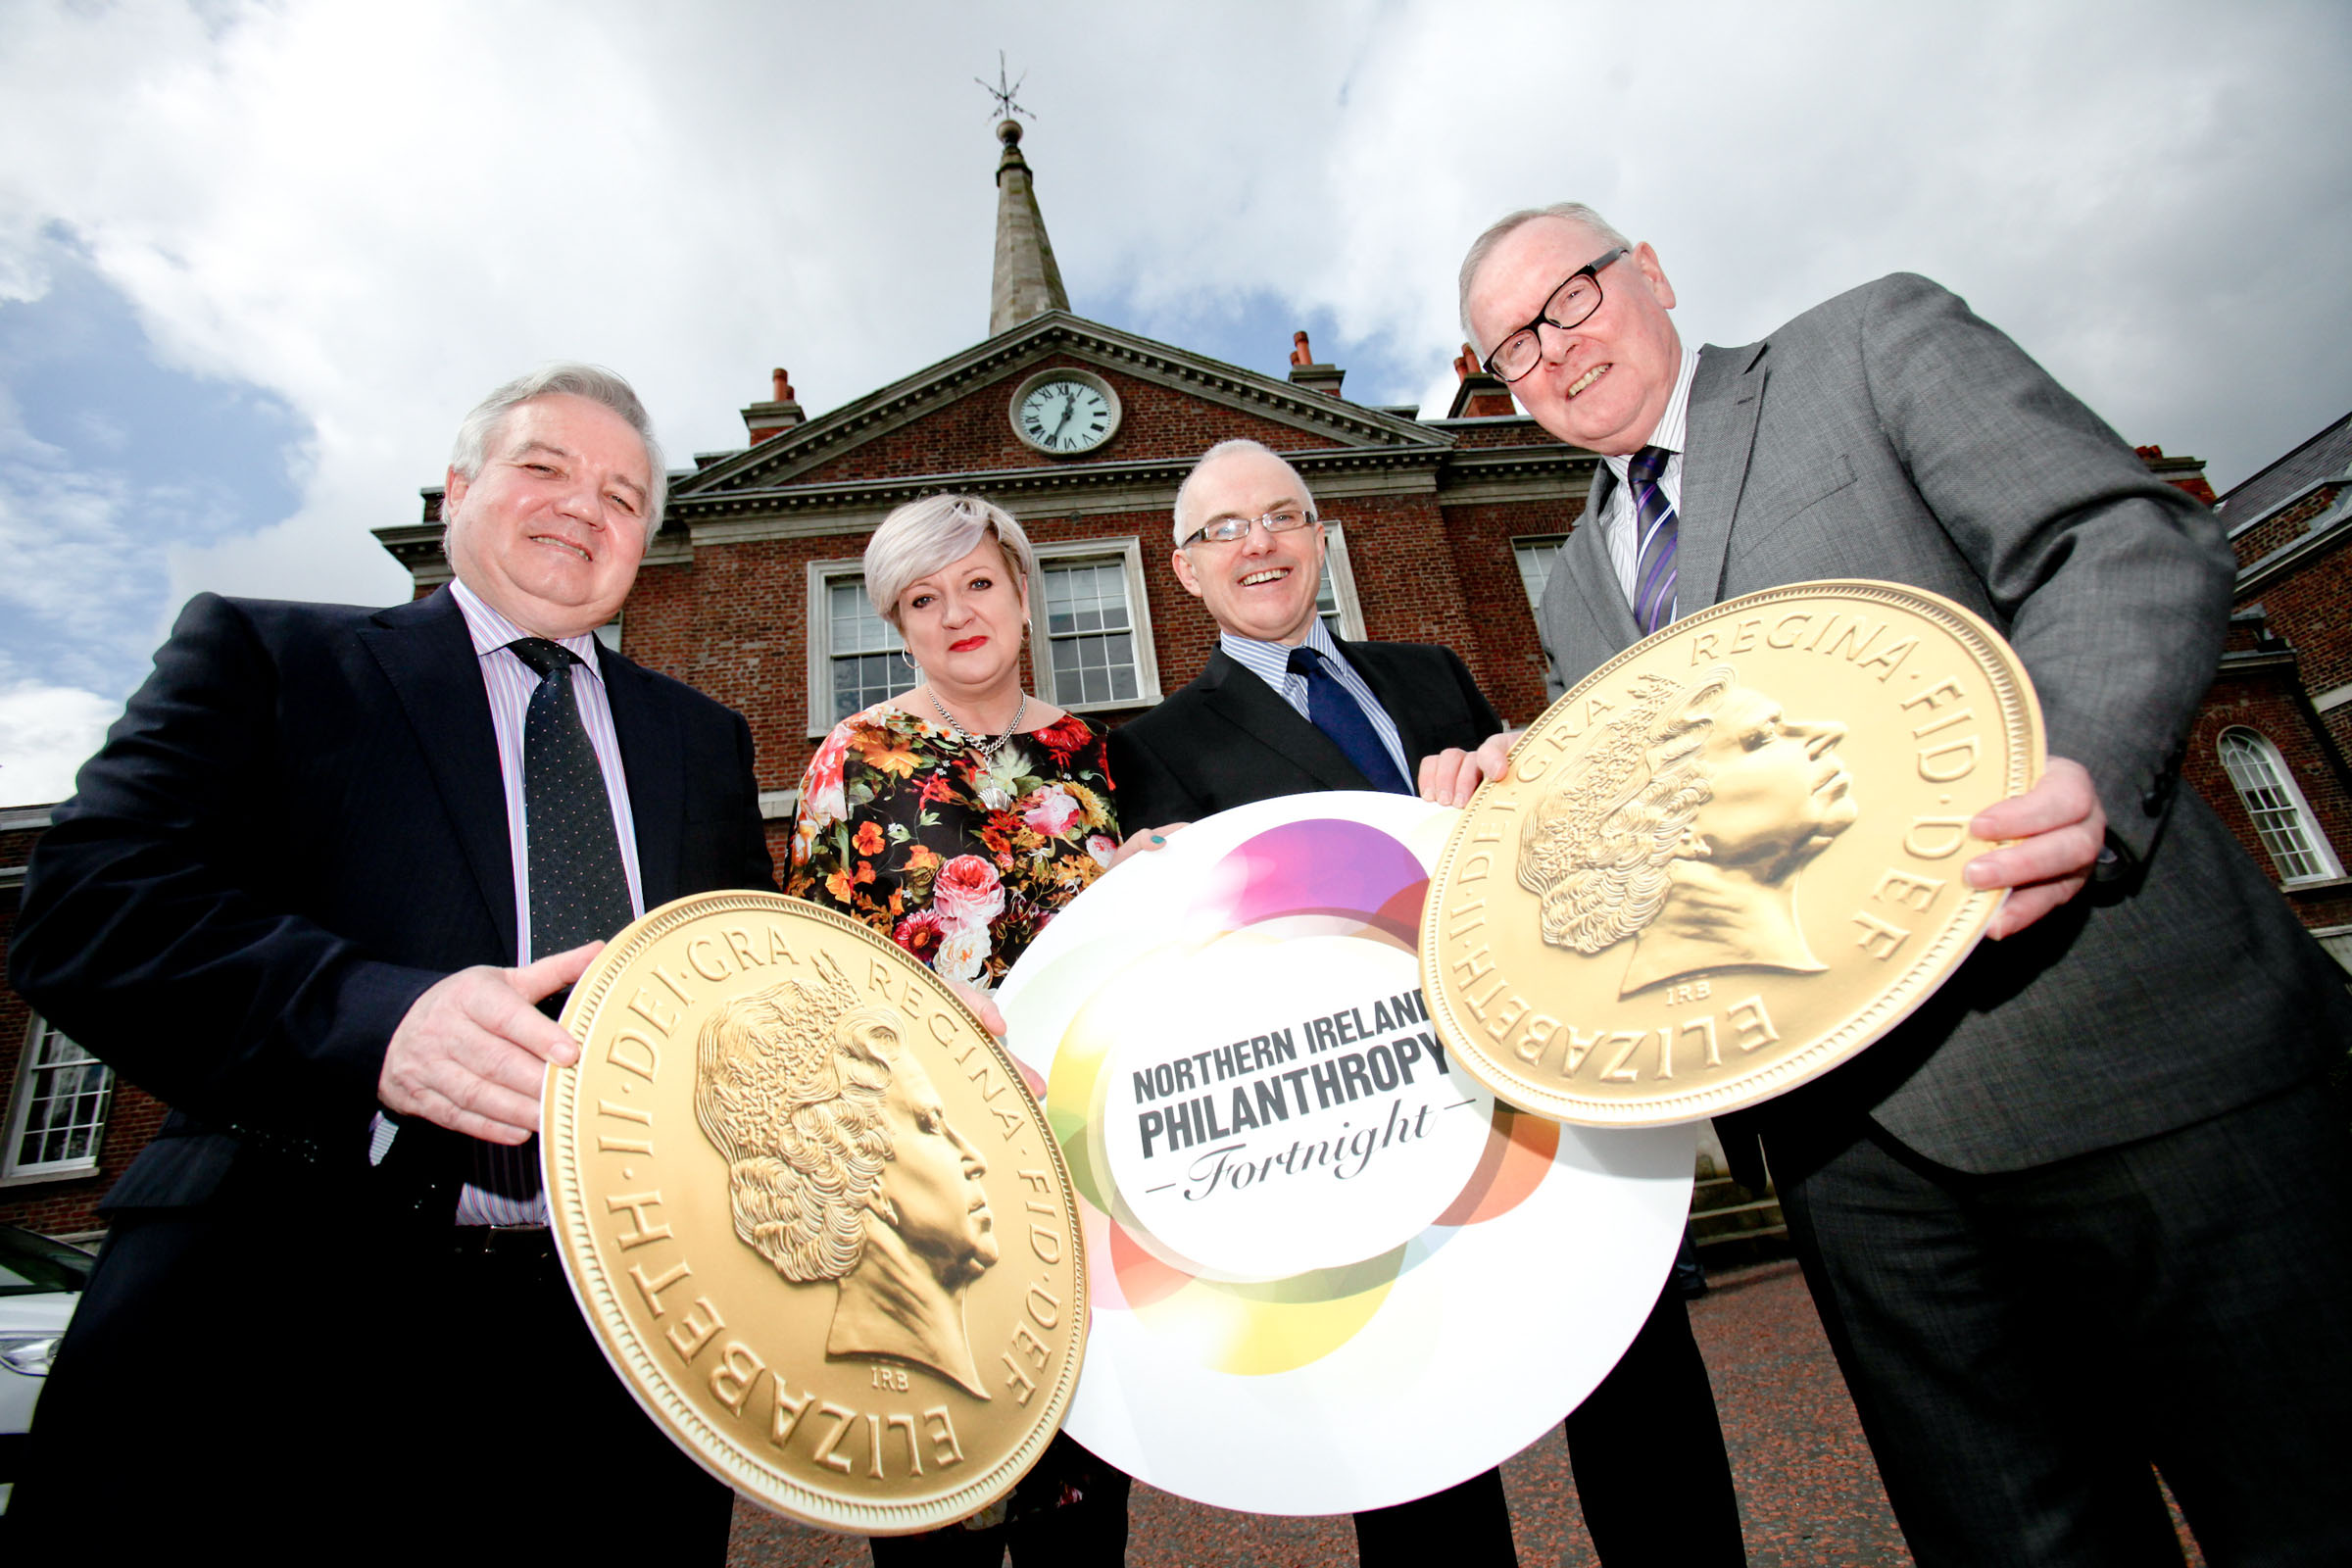 Philanthropy Fortnight Celebrates Northern Ireland's Tradition of Giving